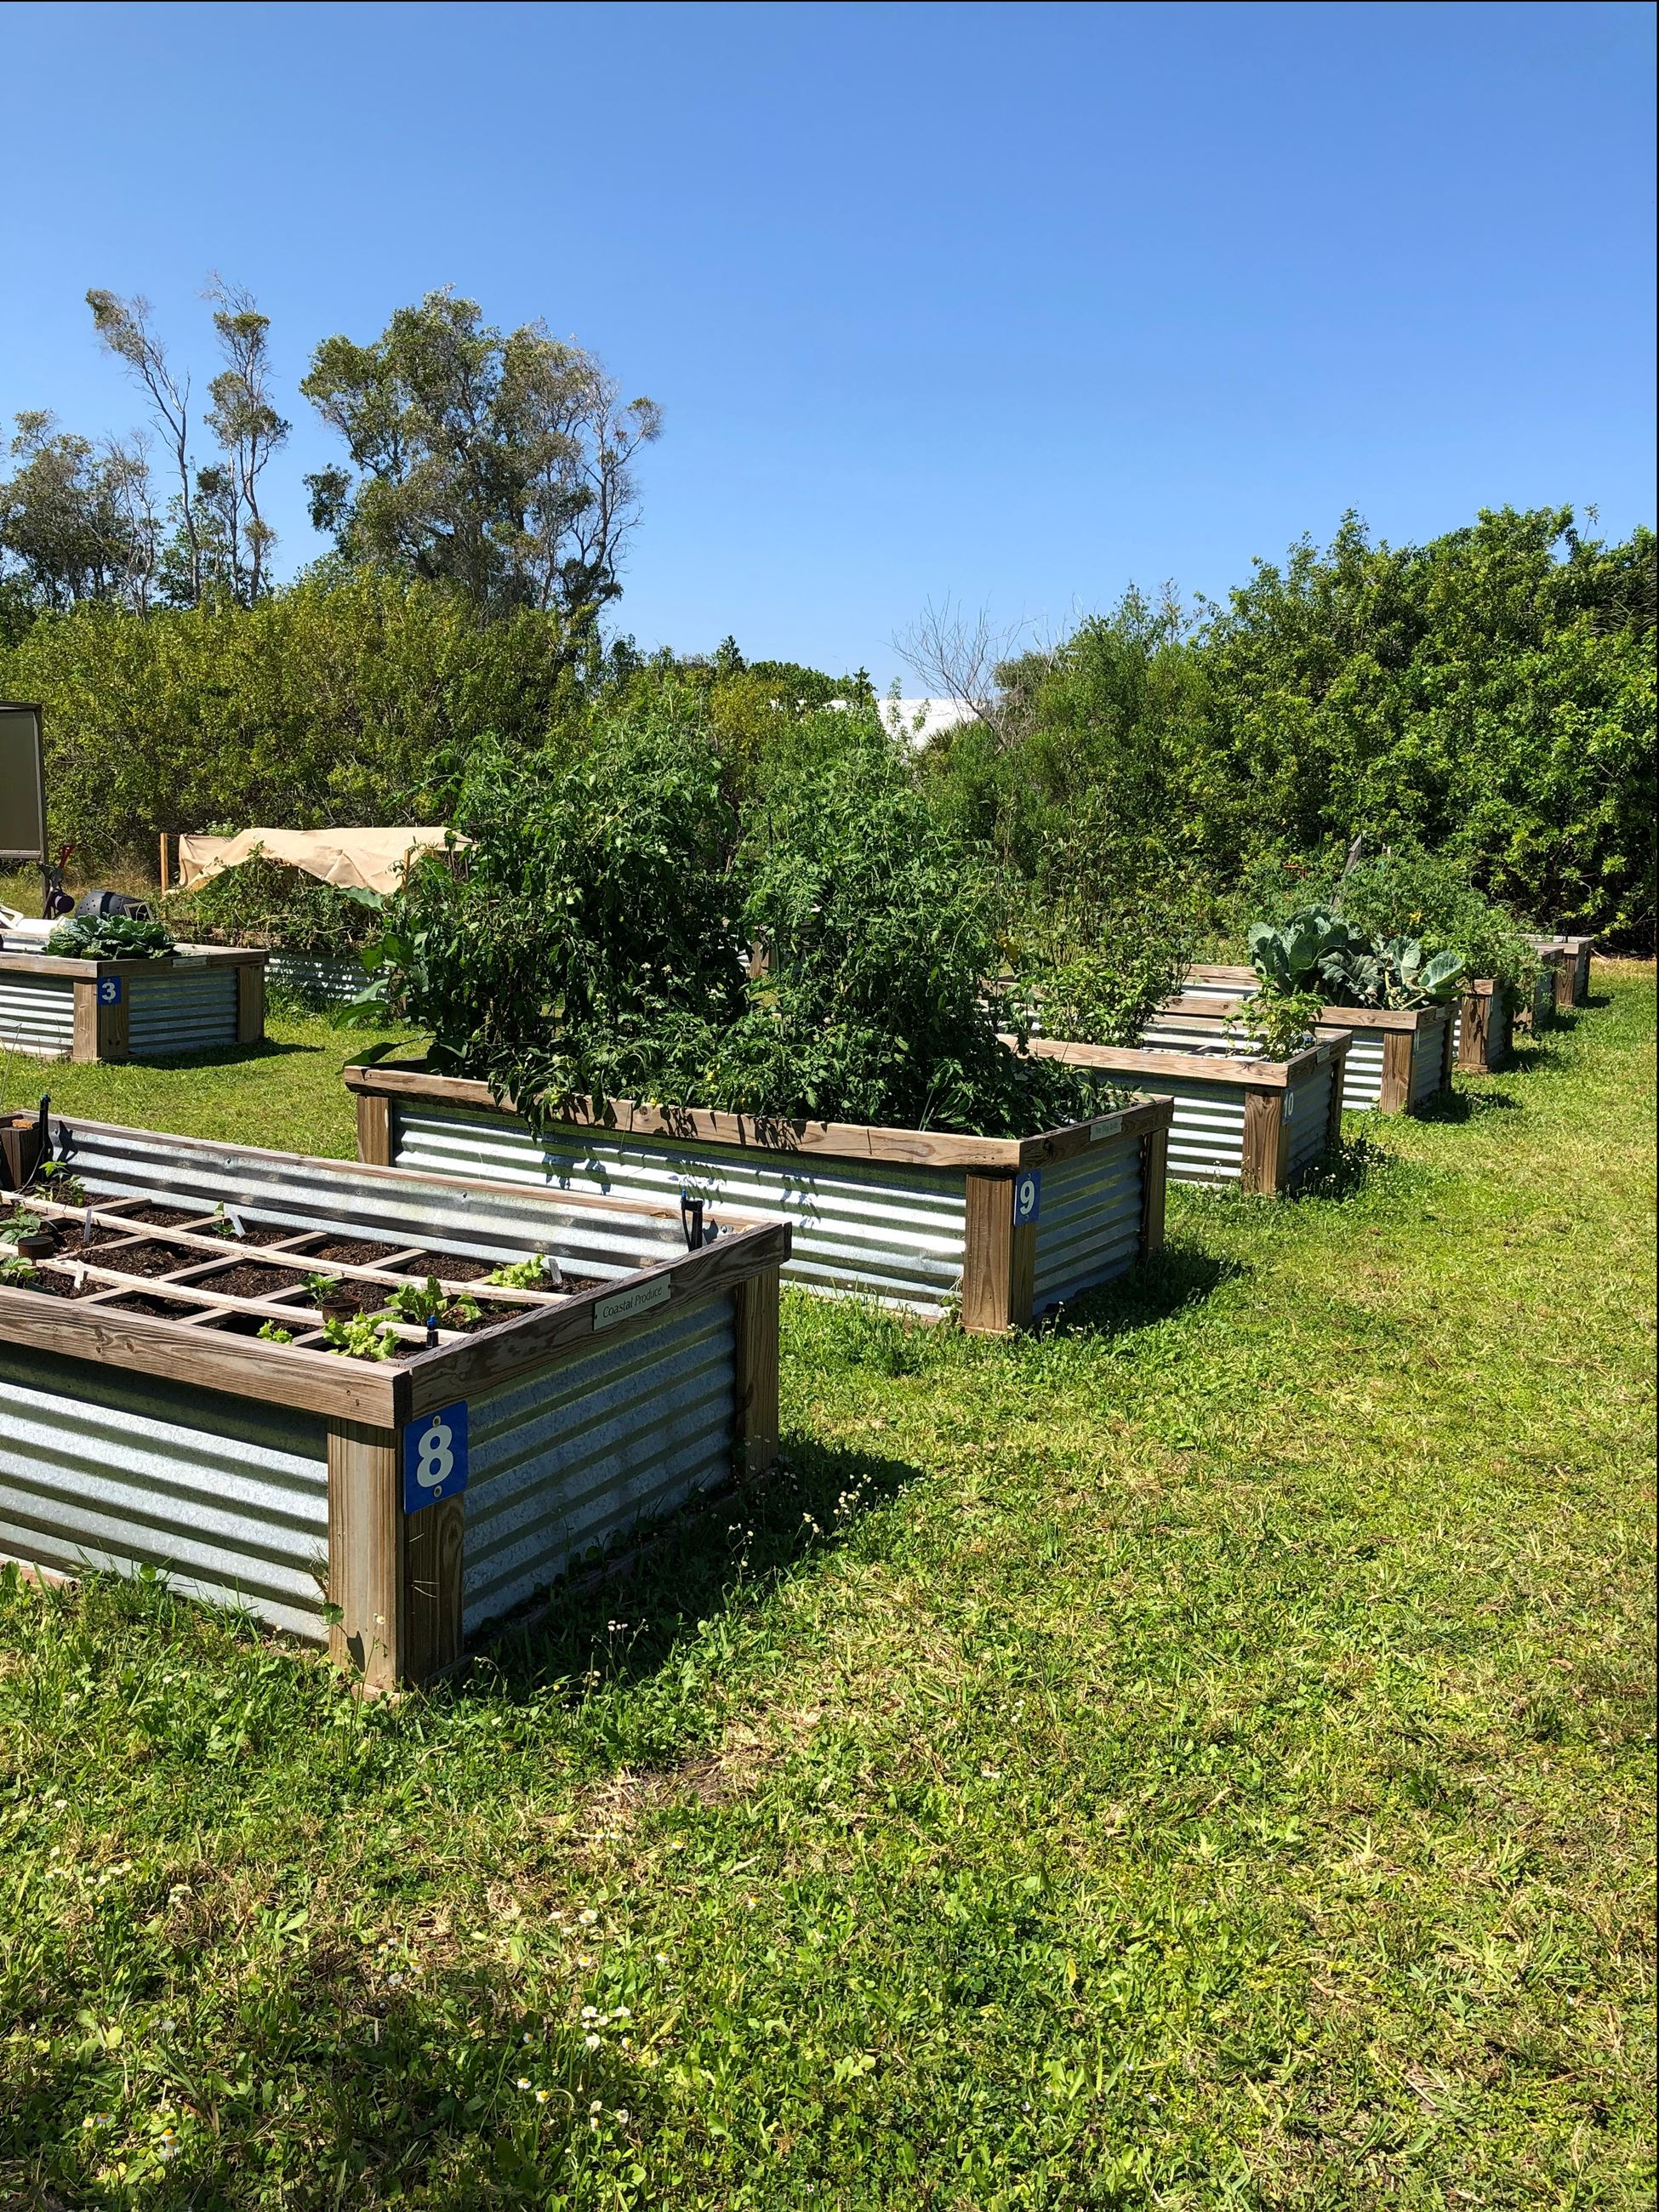 Photo of raised garden beds